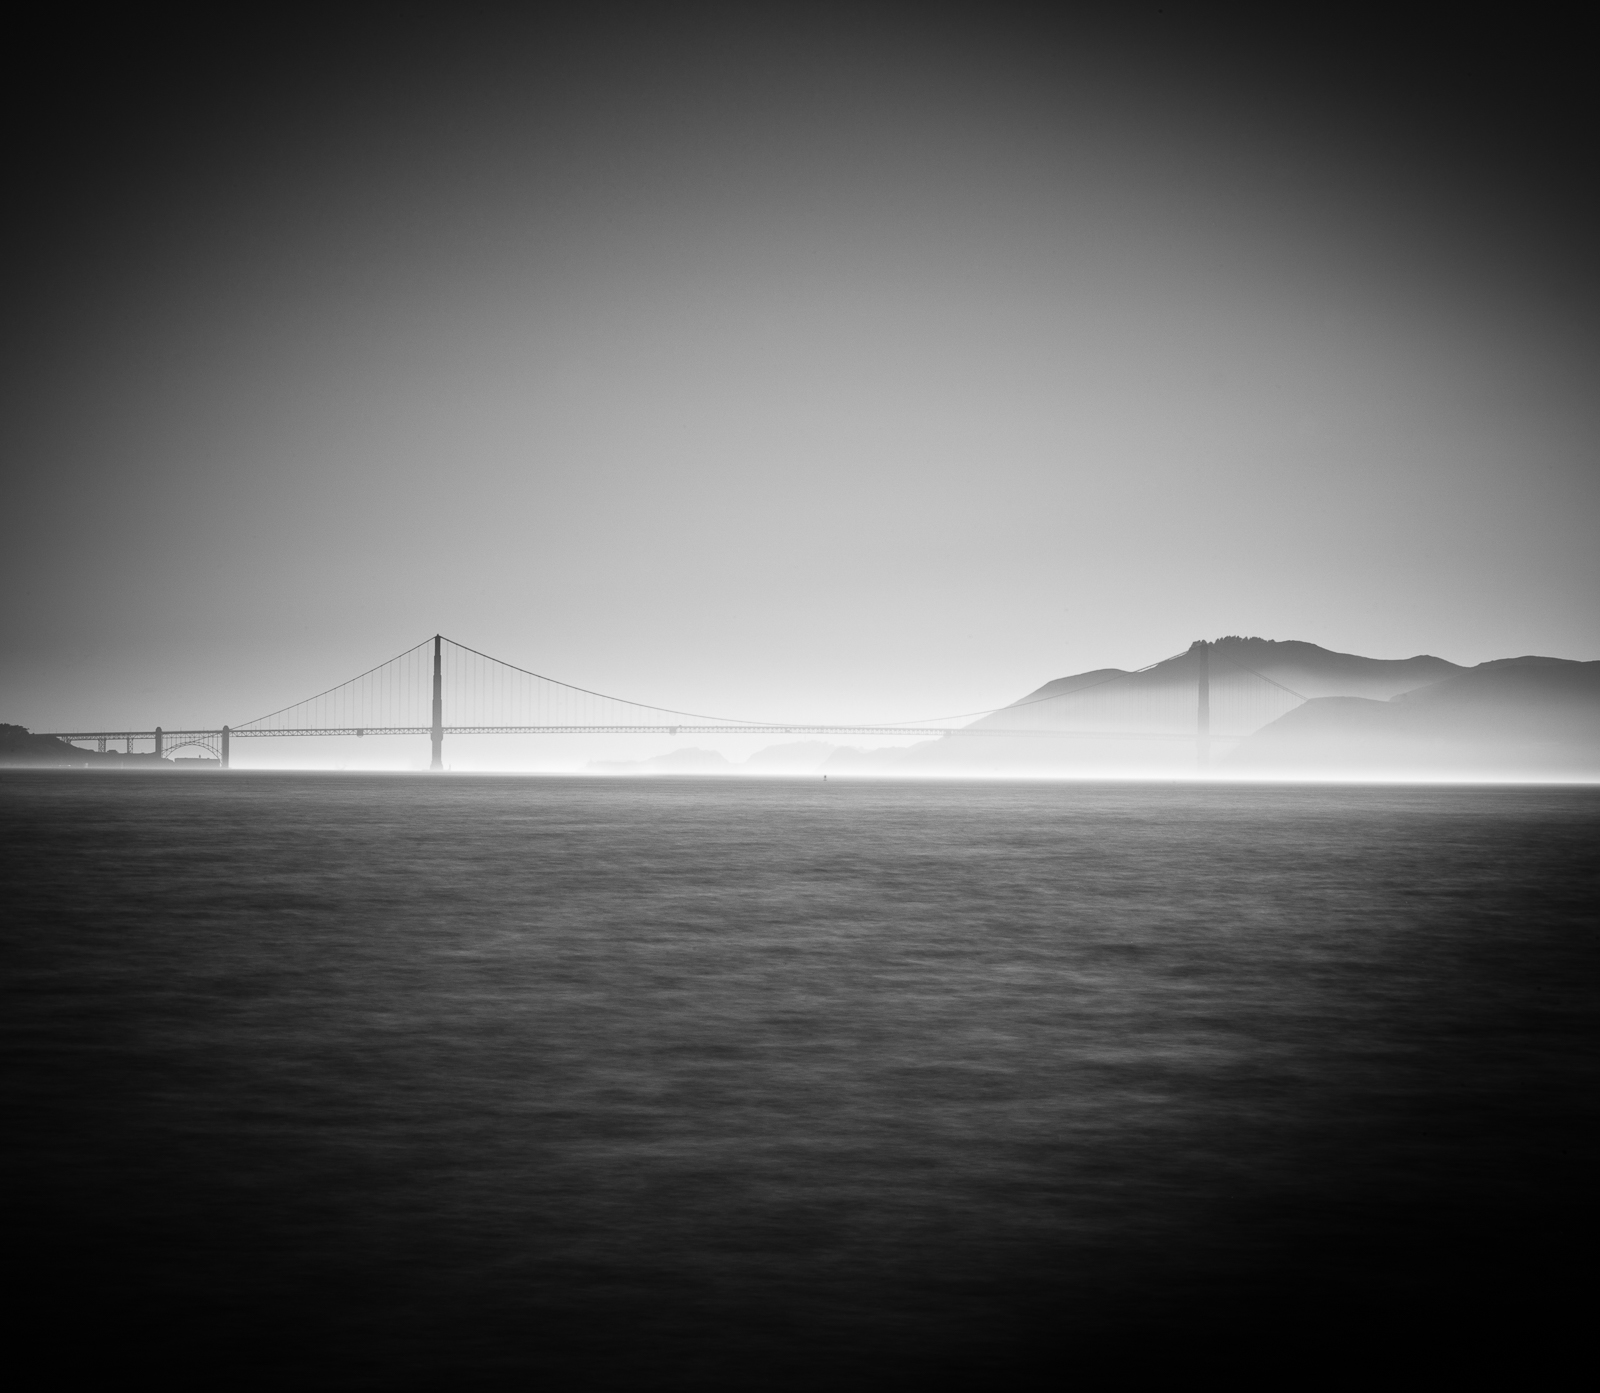 Golden Gate, Black and White, Bridge, California, Golden Gate Bridge, Horizontal, San Francisco, landscape, BW, B&W, Black, White, photo